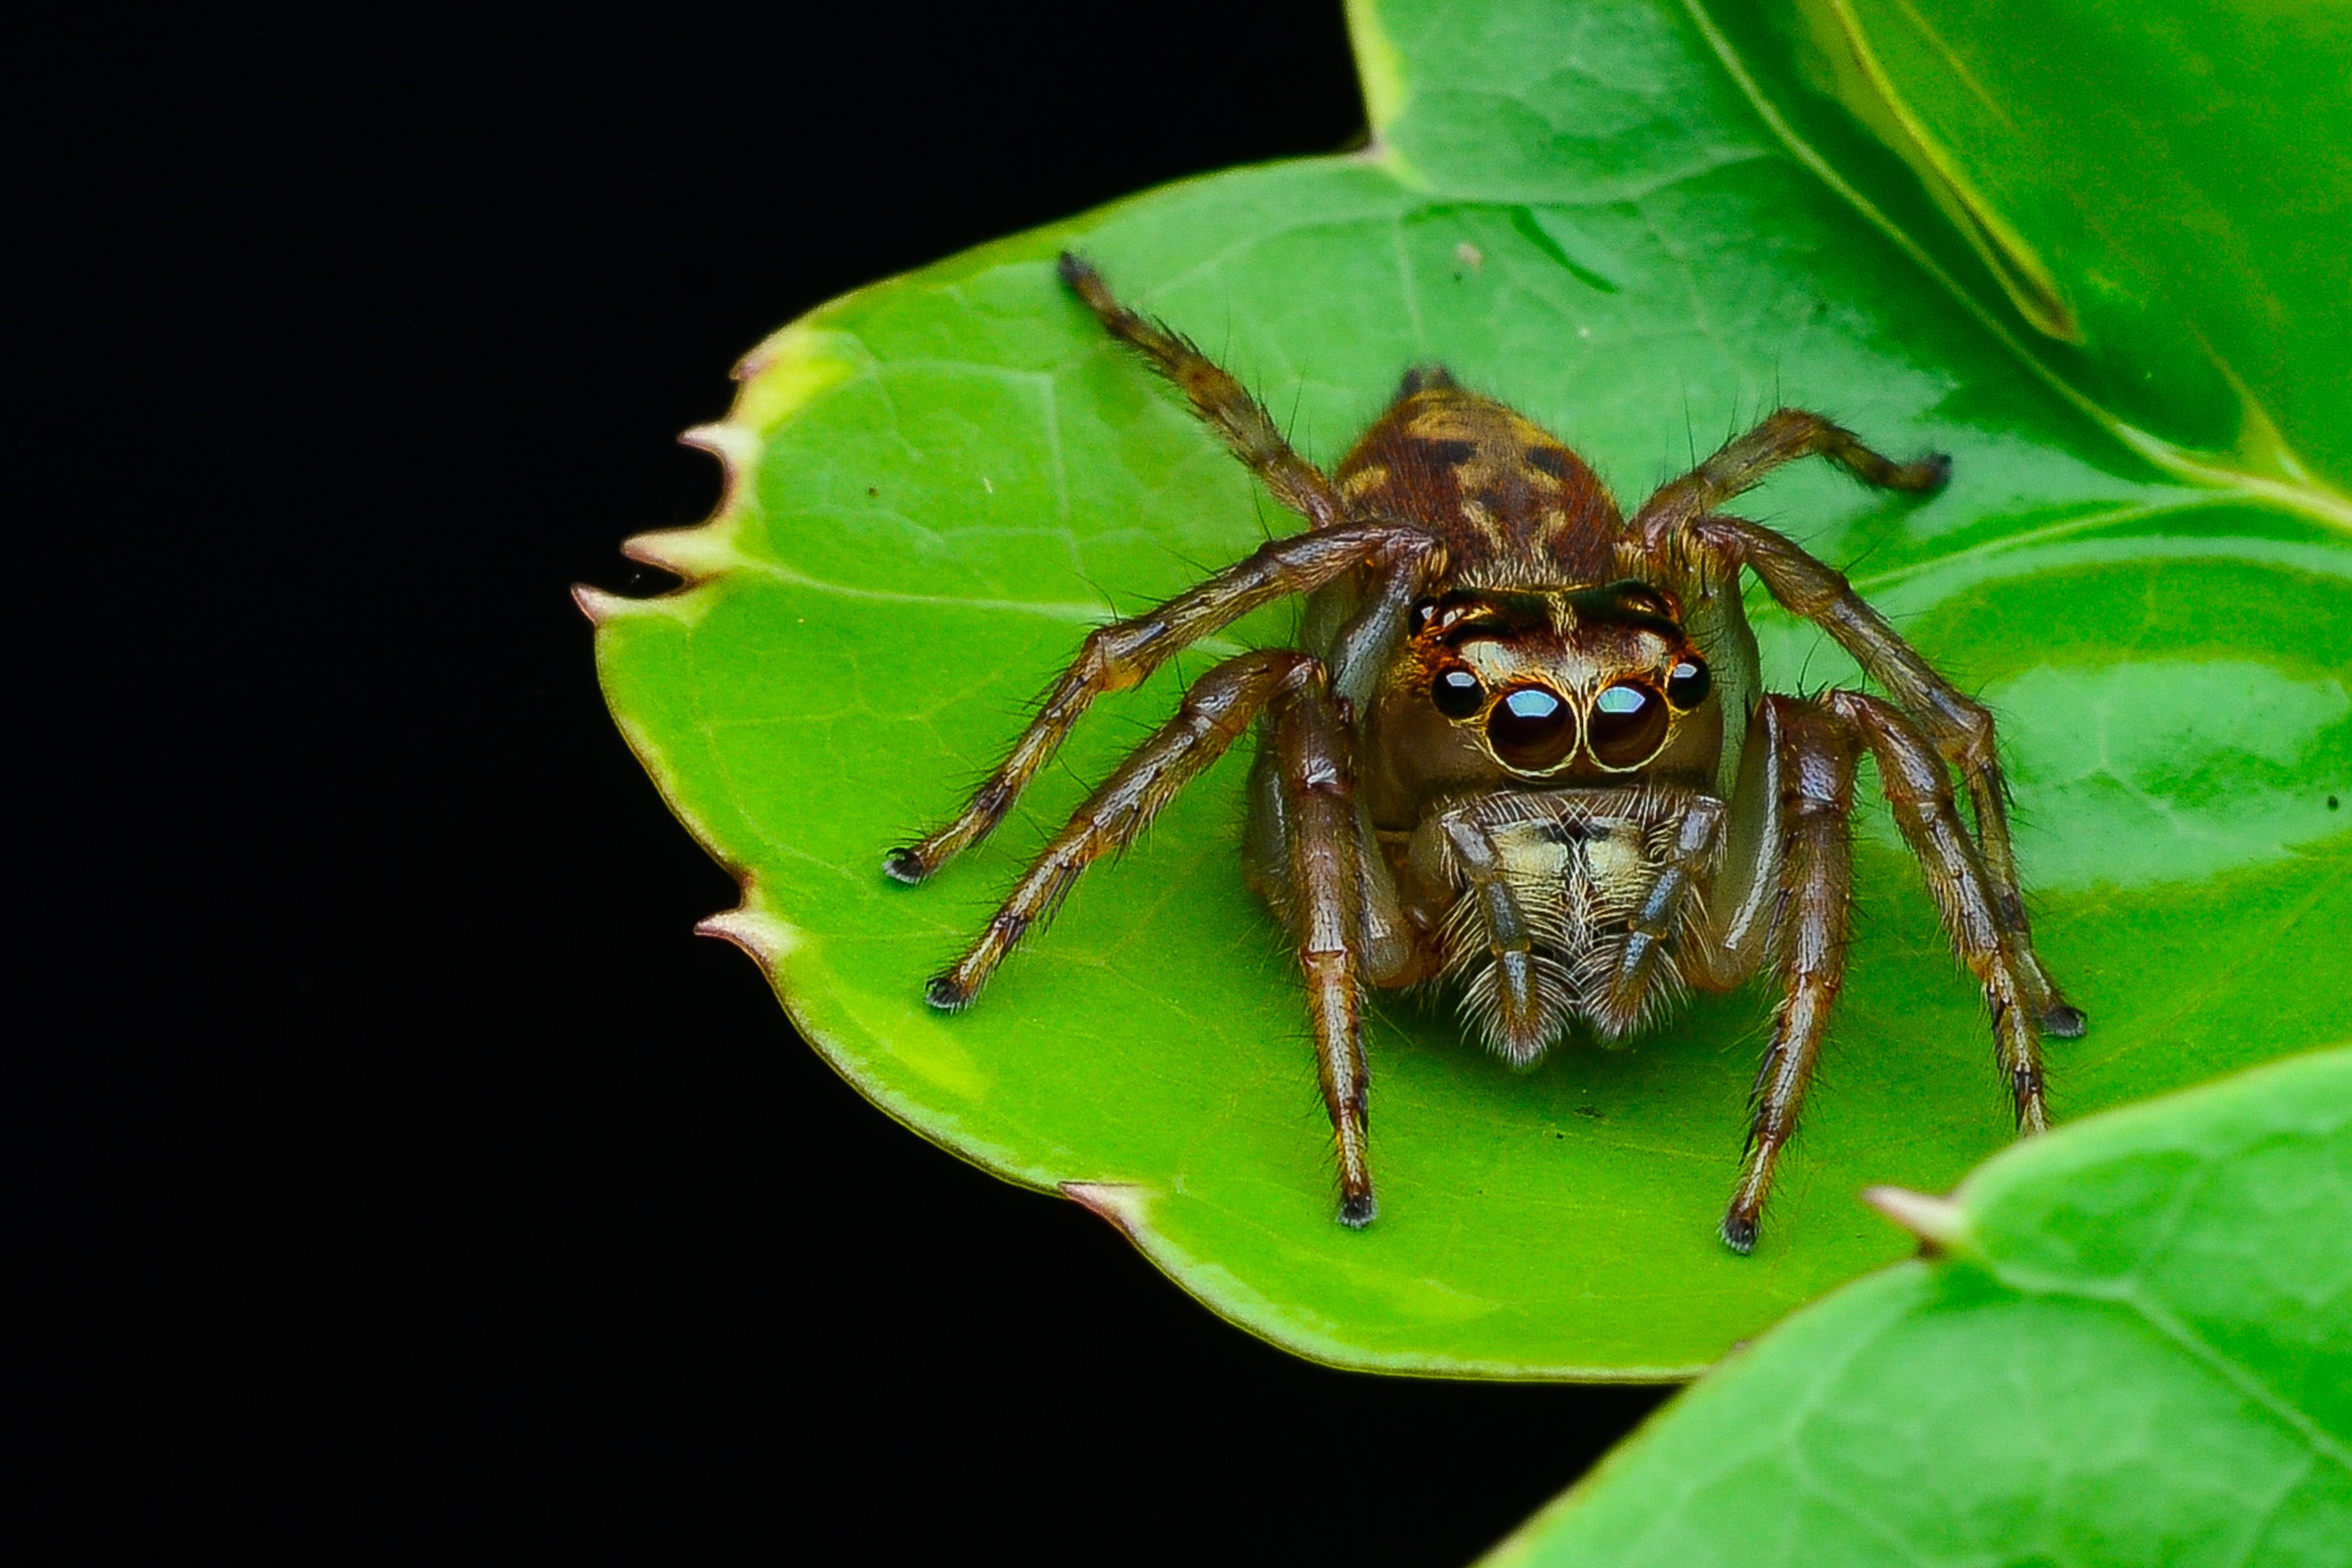 Brown Jumping Spider on Green Leaf Plant